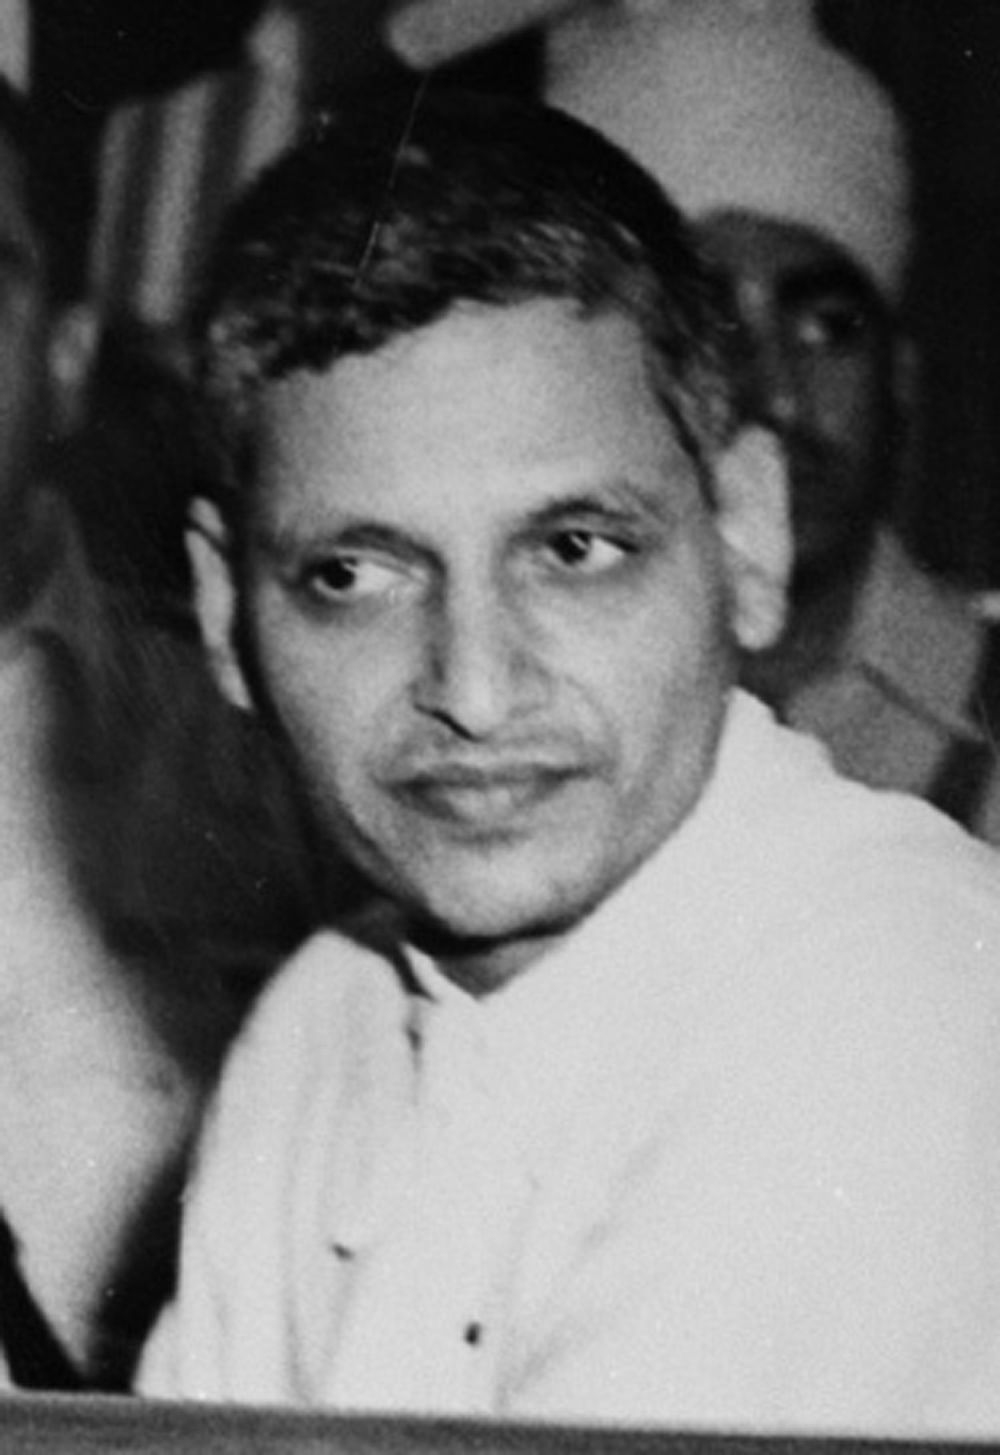 Nathuram Godse at his trial. (Photo Courtesy: Photos Division, Government of India)